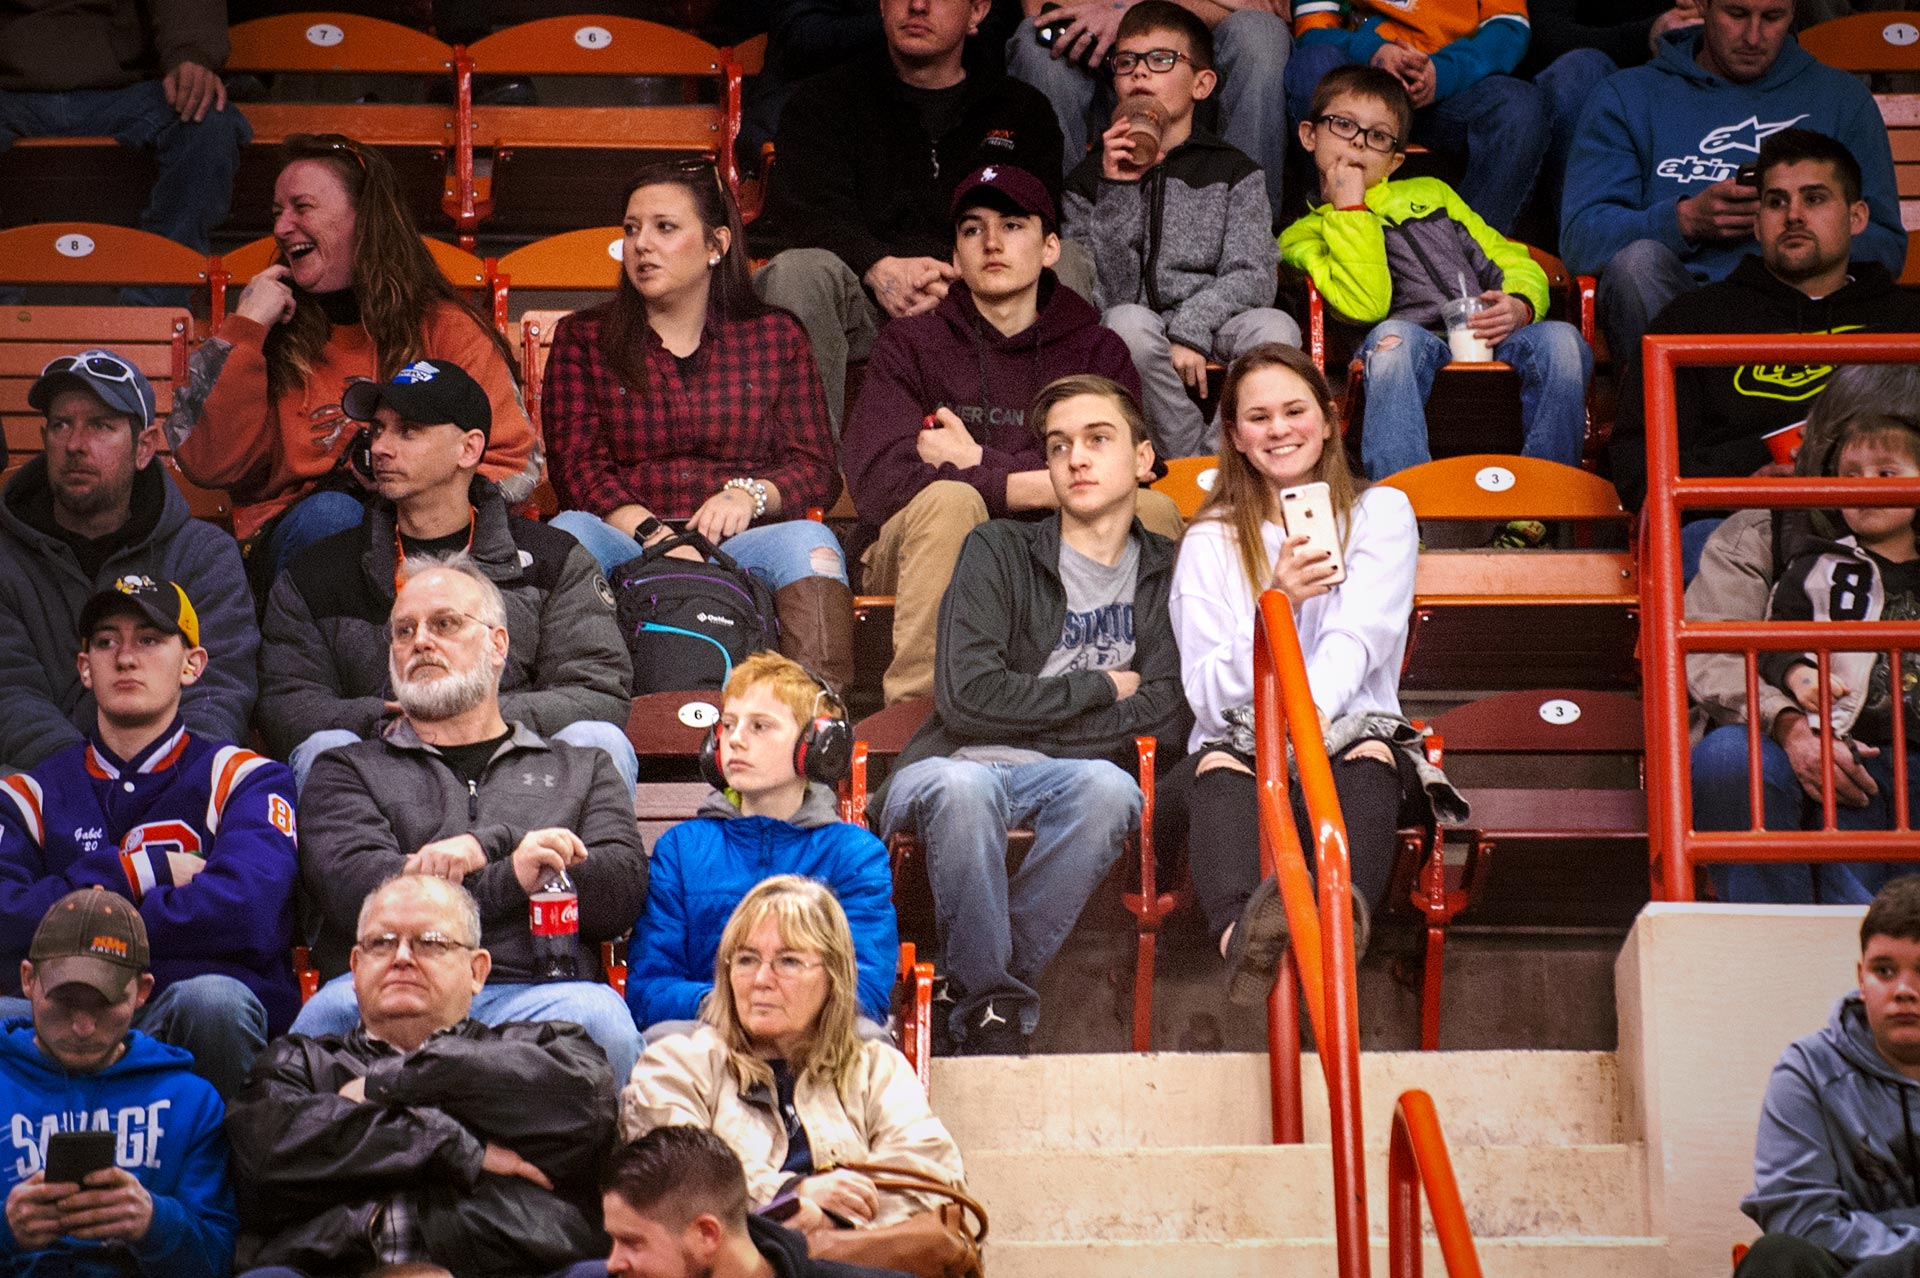 My daughter Megan and her boyfriend david in the stands to watch the arenacross races at Motorama 2018.